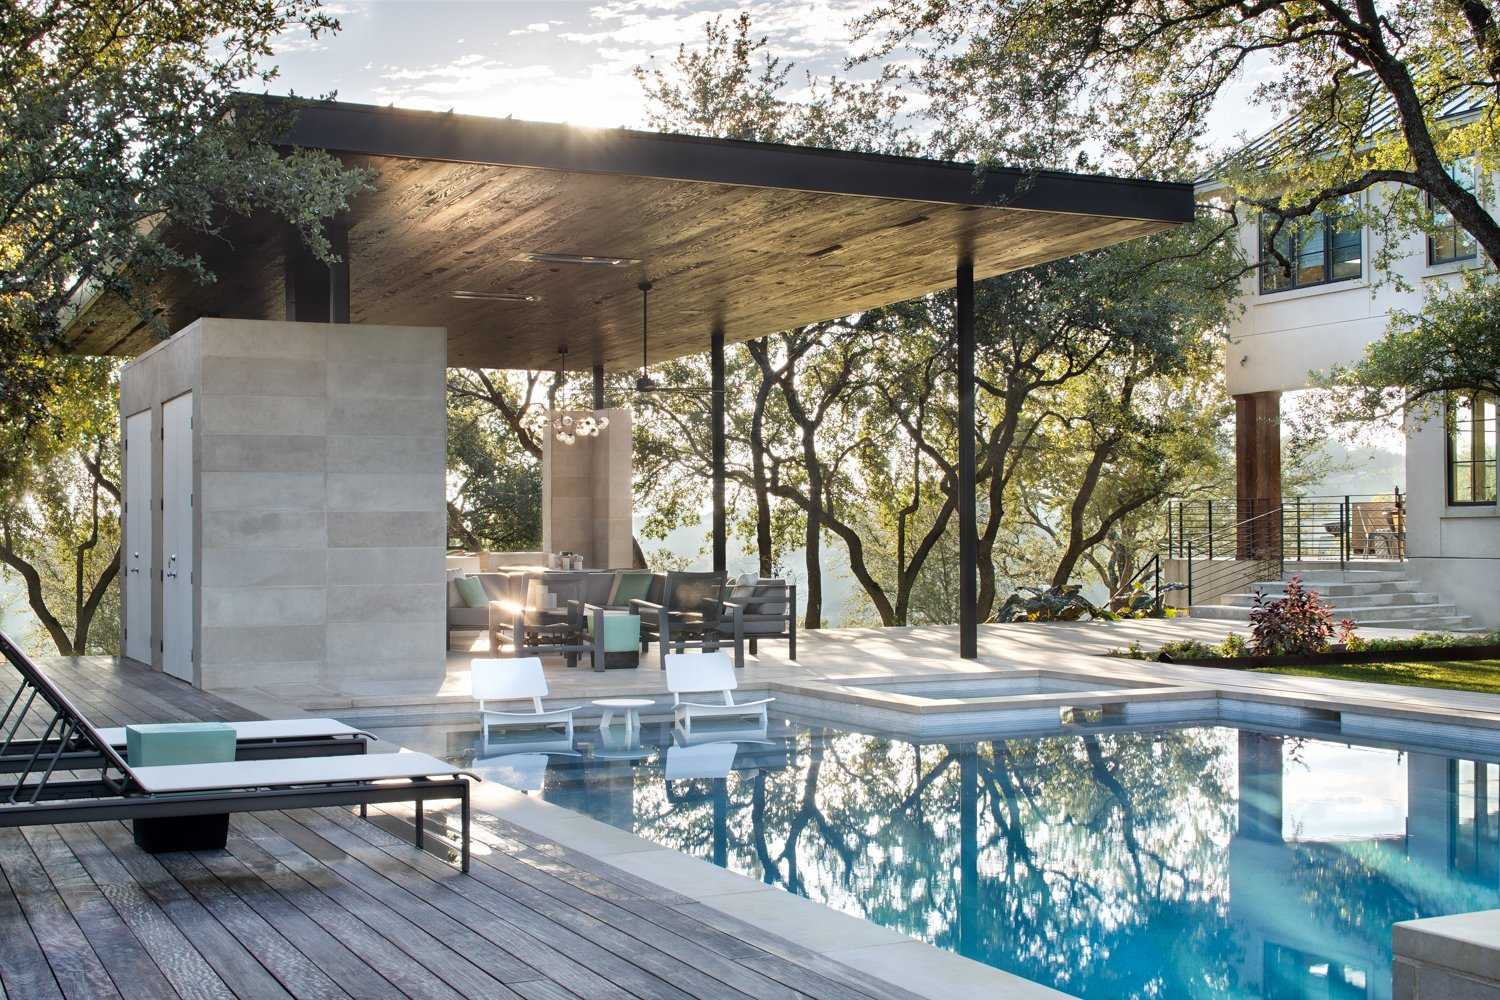 Outdoor, Large, Large, Hanging, Trees, and Back Yard The view from Longchamp Outdoor Living's ipe pool deck. Clark Richardson Architects designed the multi-use space to be perfect all year long.  Best Outdoor Photos from Longchamp Outdoor Living